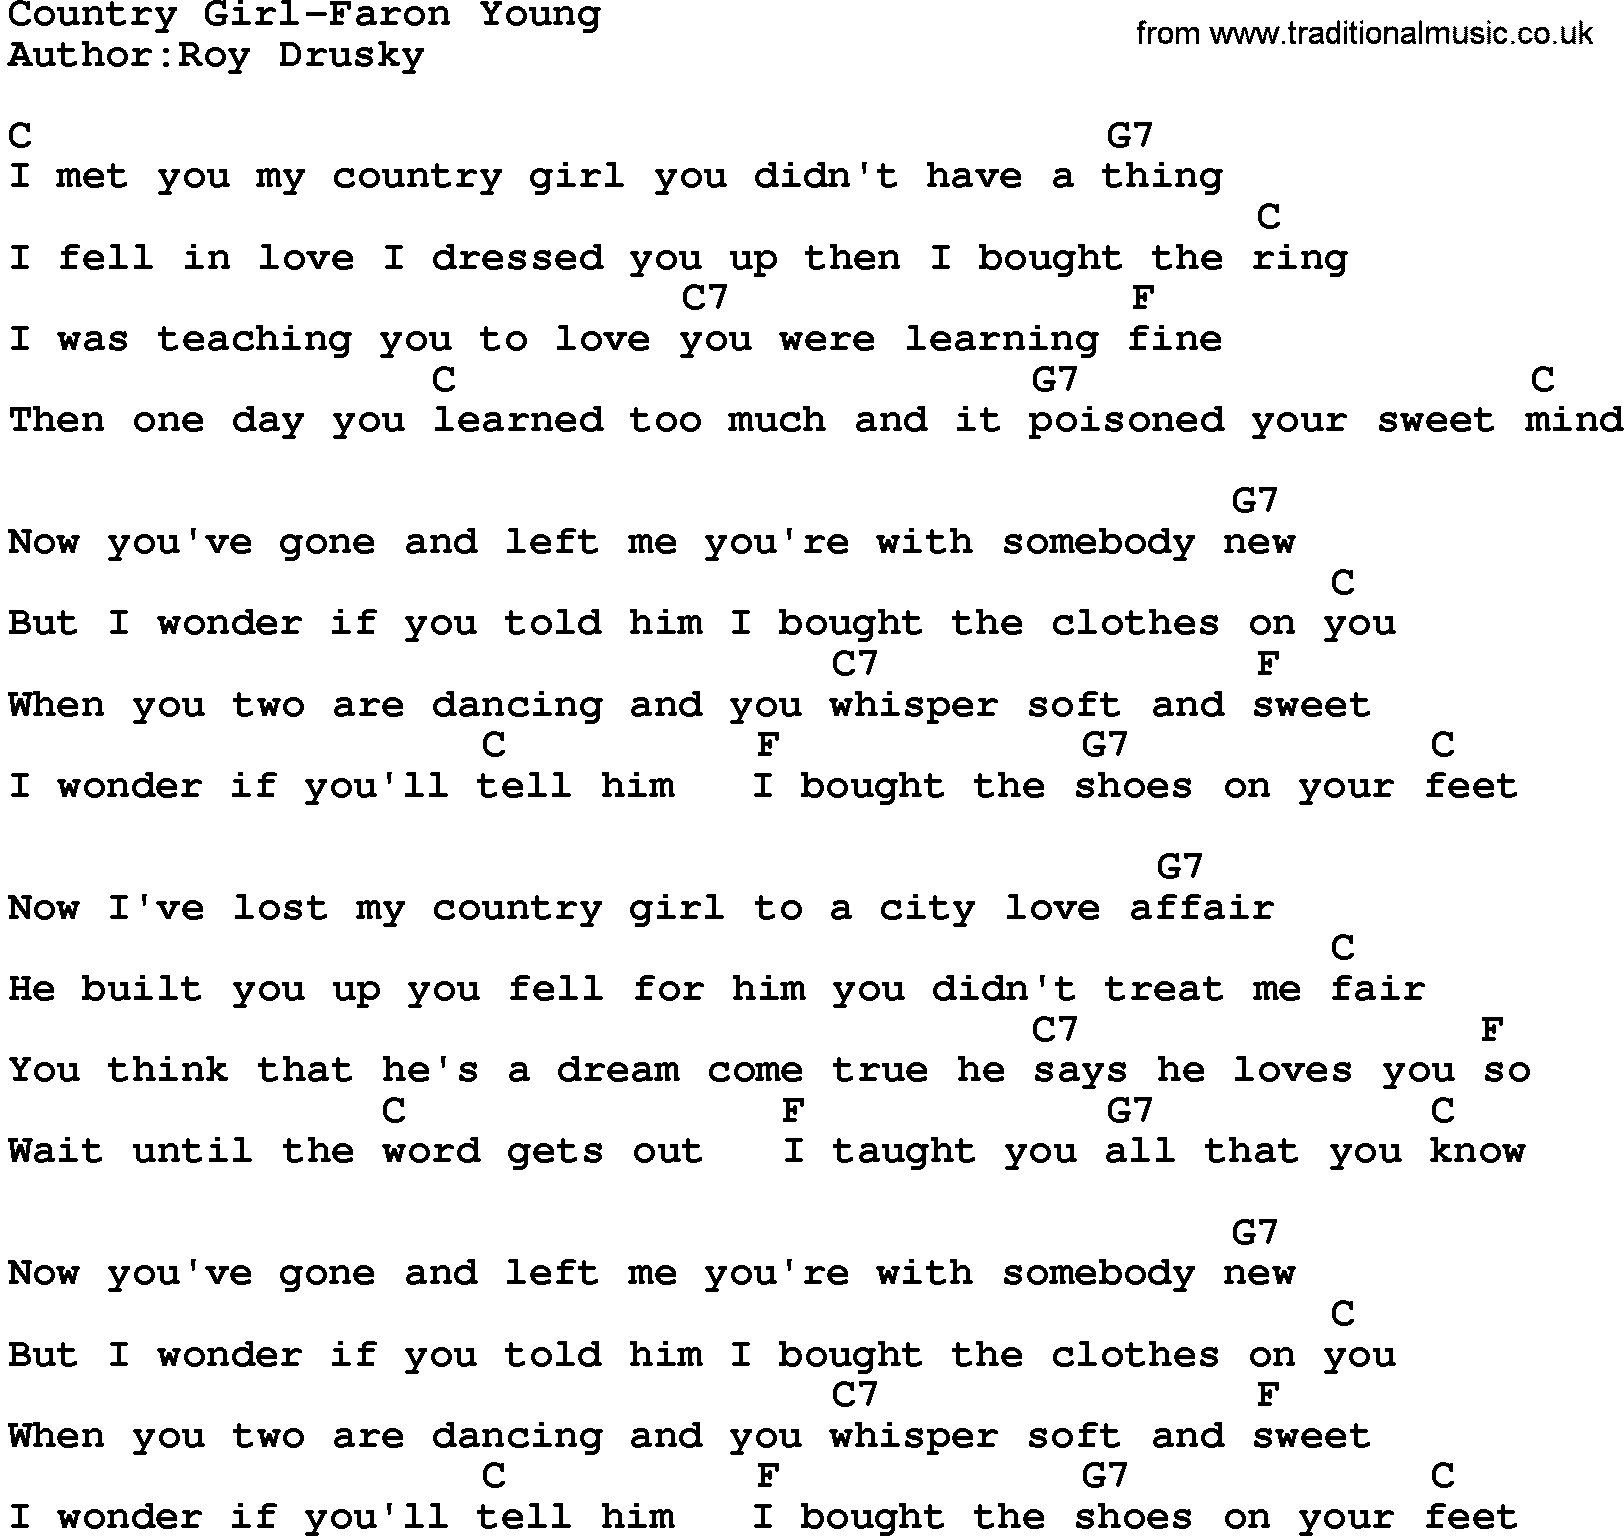 Country musiccountry girl faron young lyrics and chords hexwebz Image collections